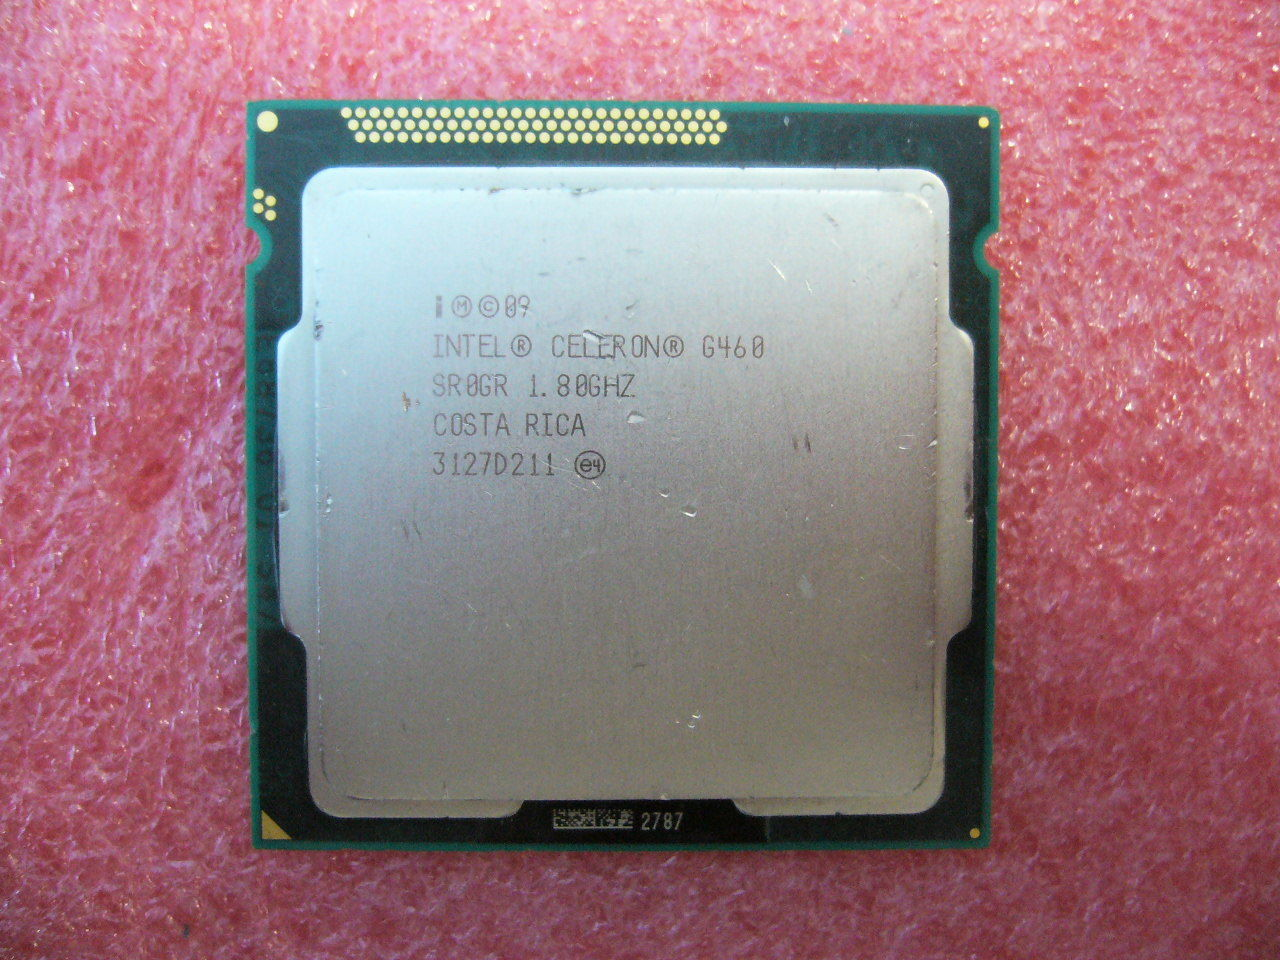 QTY 1x INTEL Celeron CPU G460 1.8GHZ 1.5MB LGA1155 SR0GR